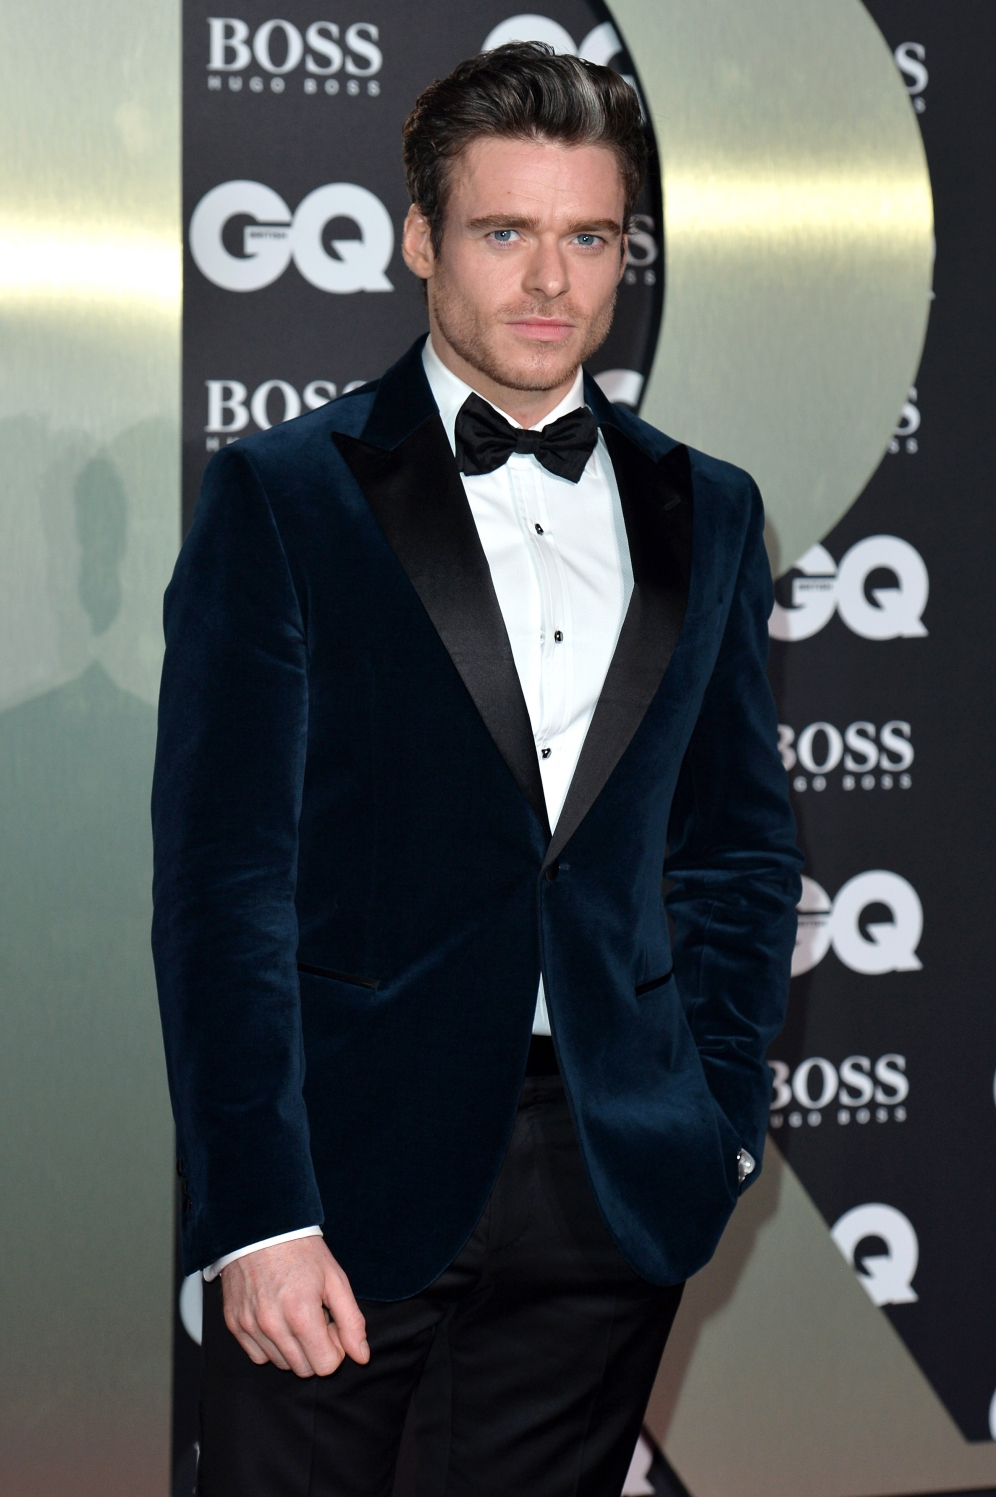 Richard Madden | GQ Awards 2019